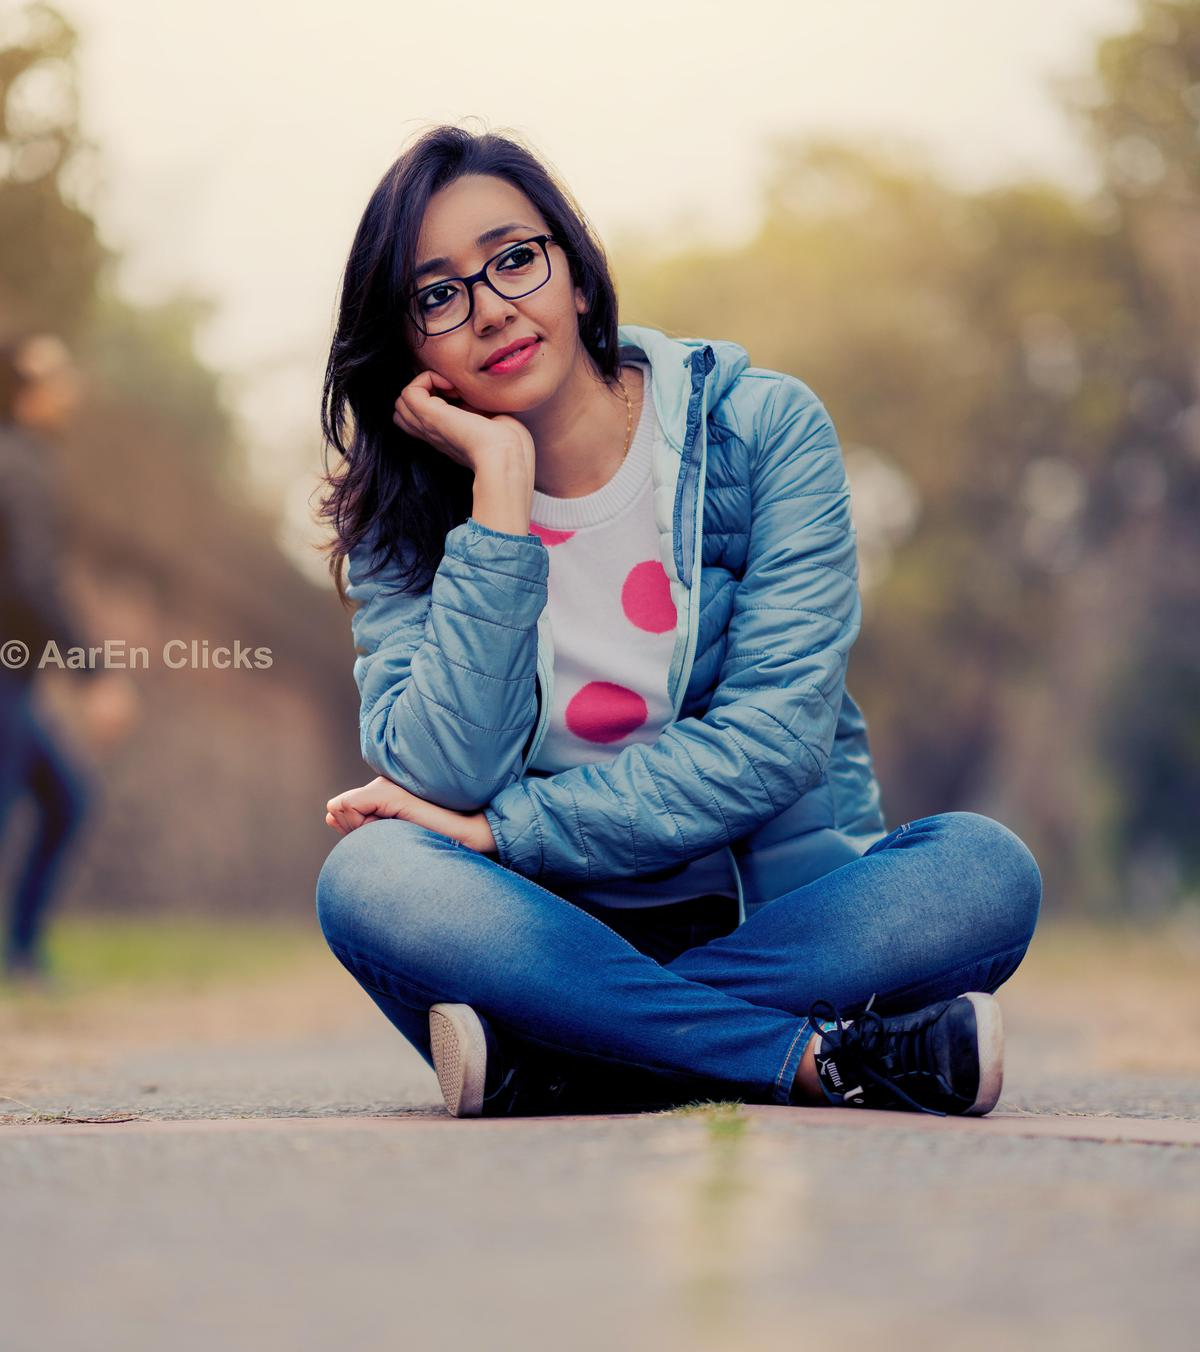 Image of People in nature, Photograph, Sitting, Beauty, Blue, Lip etc.